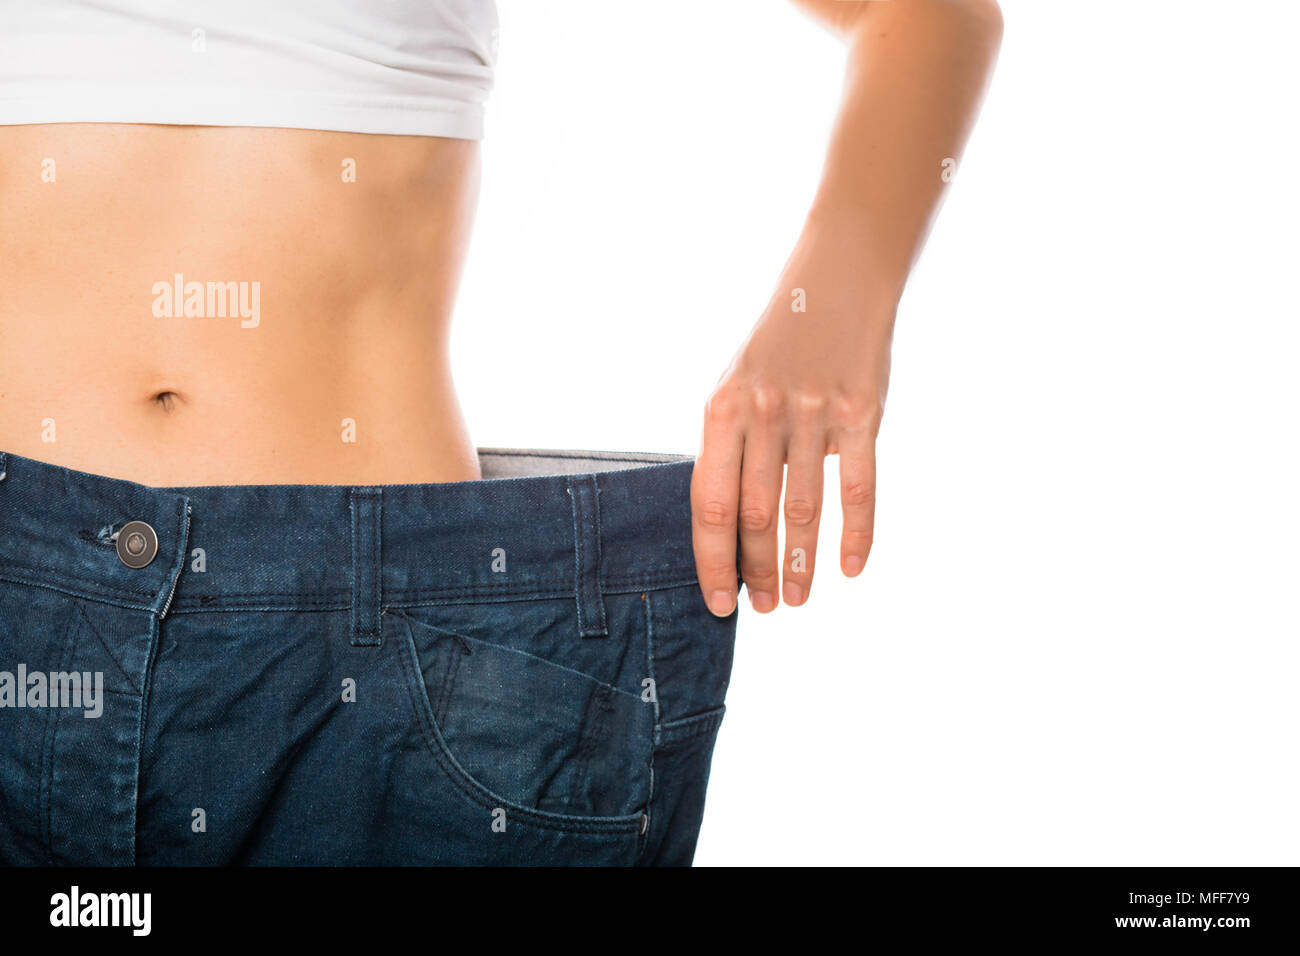 Weight loss and slimming - Stock Image